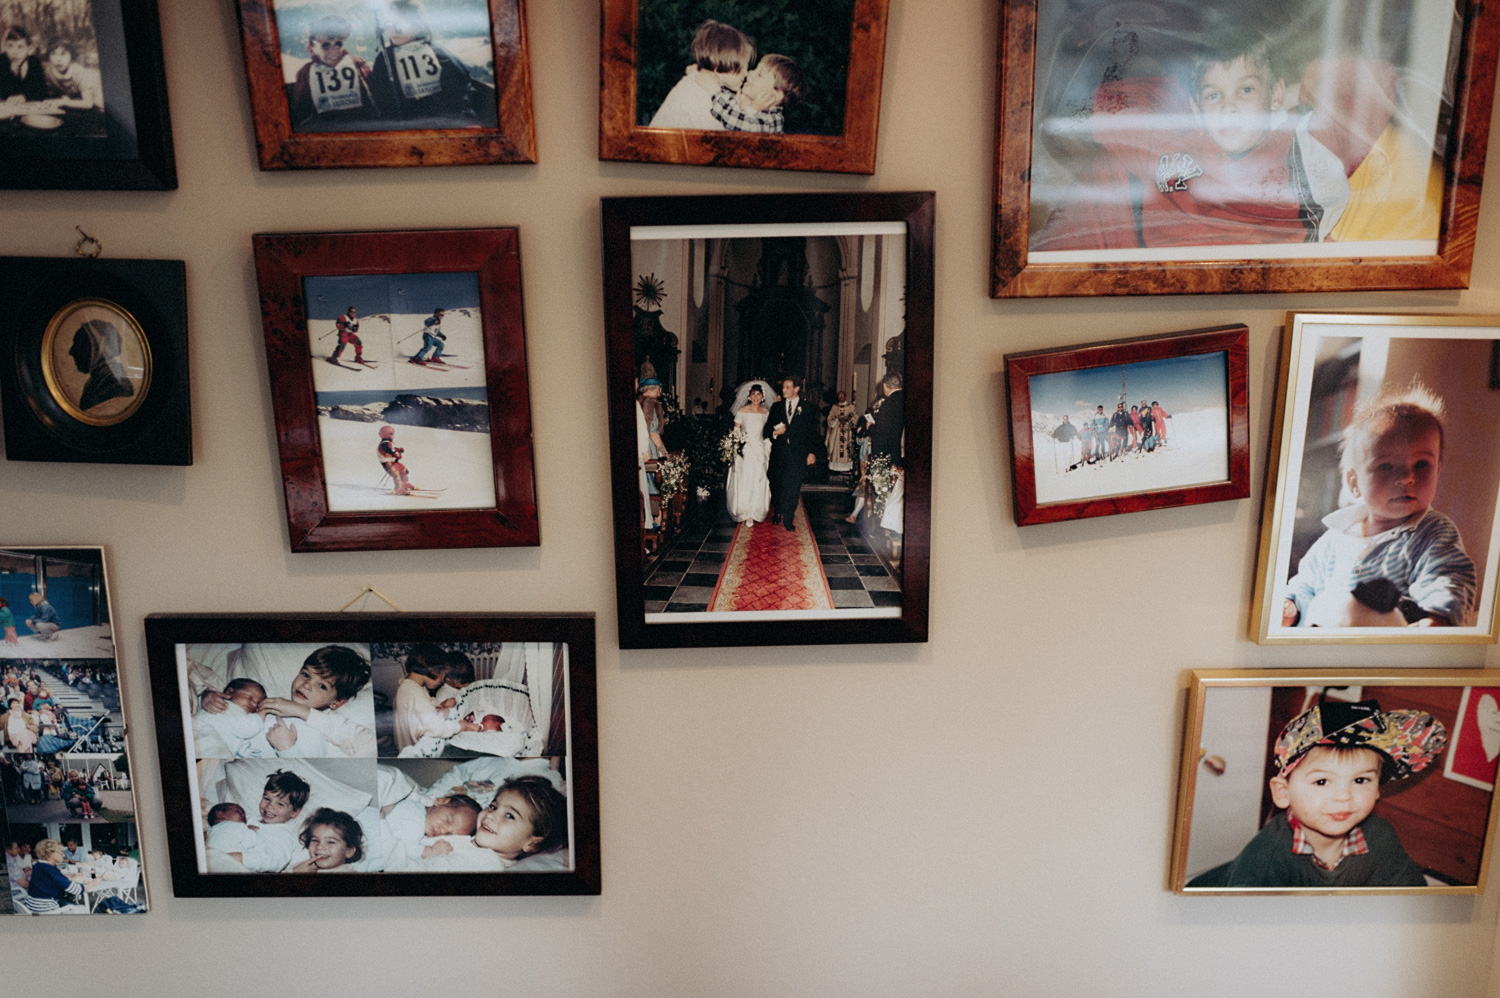 Family photos hanging on wall